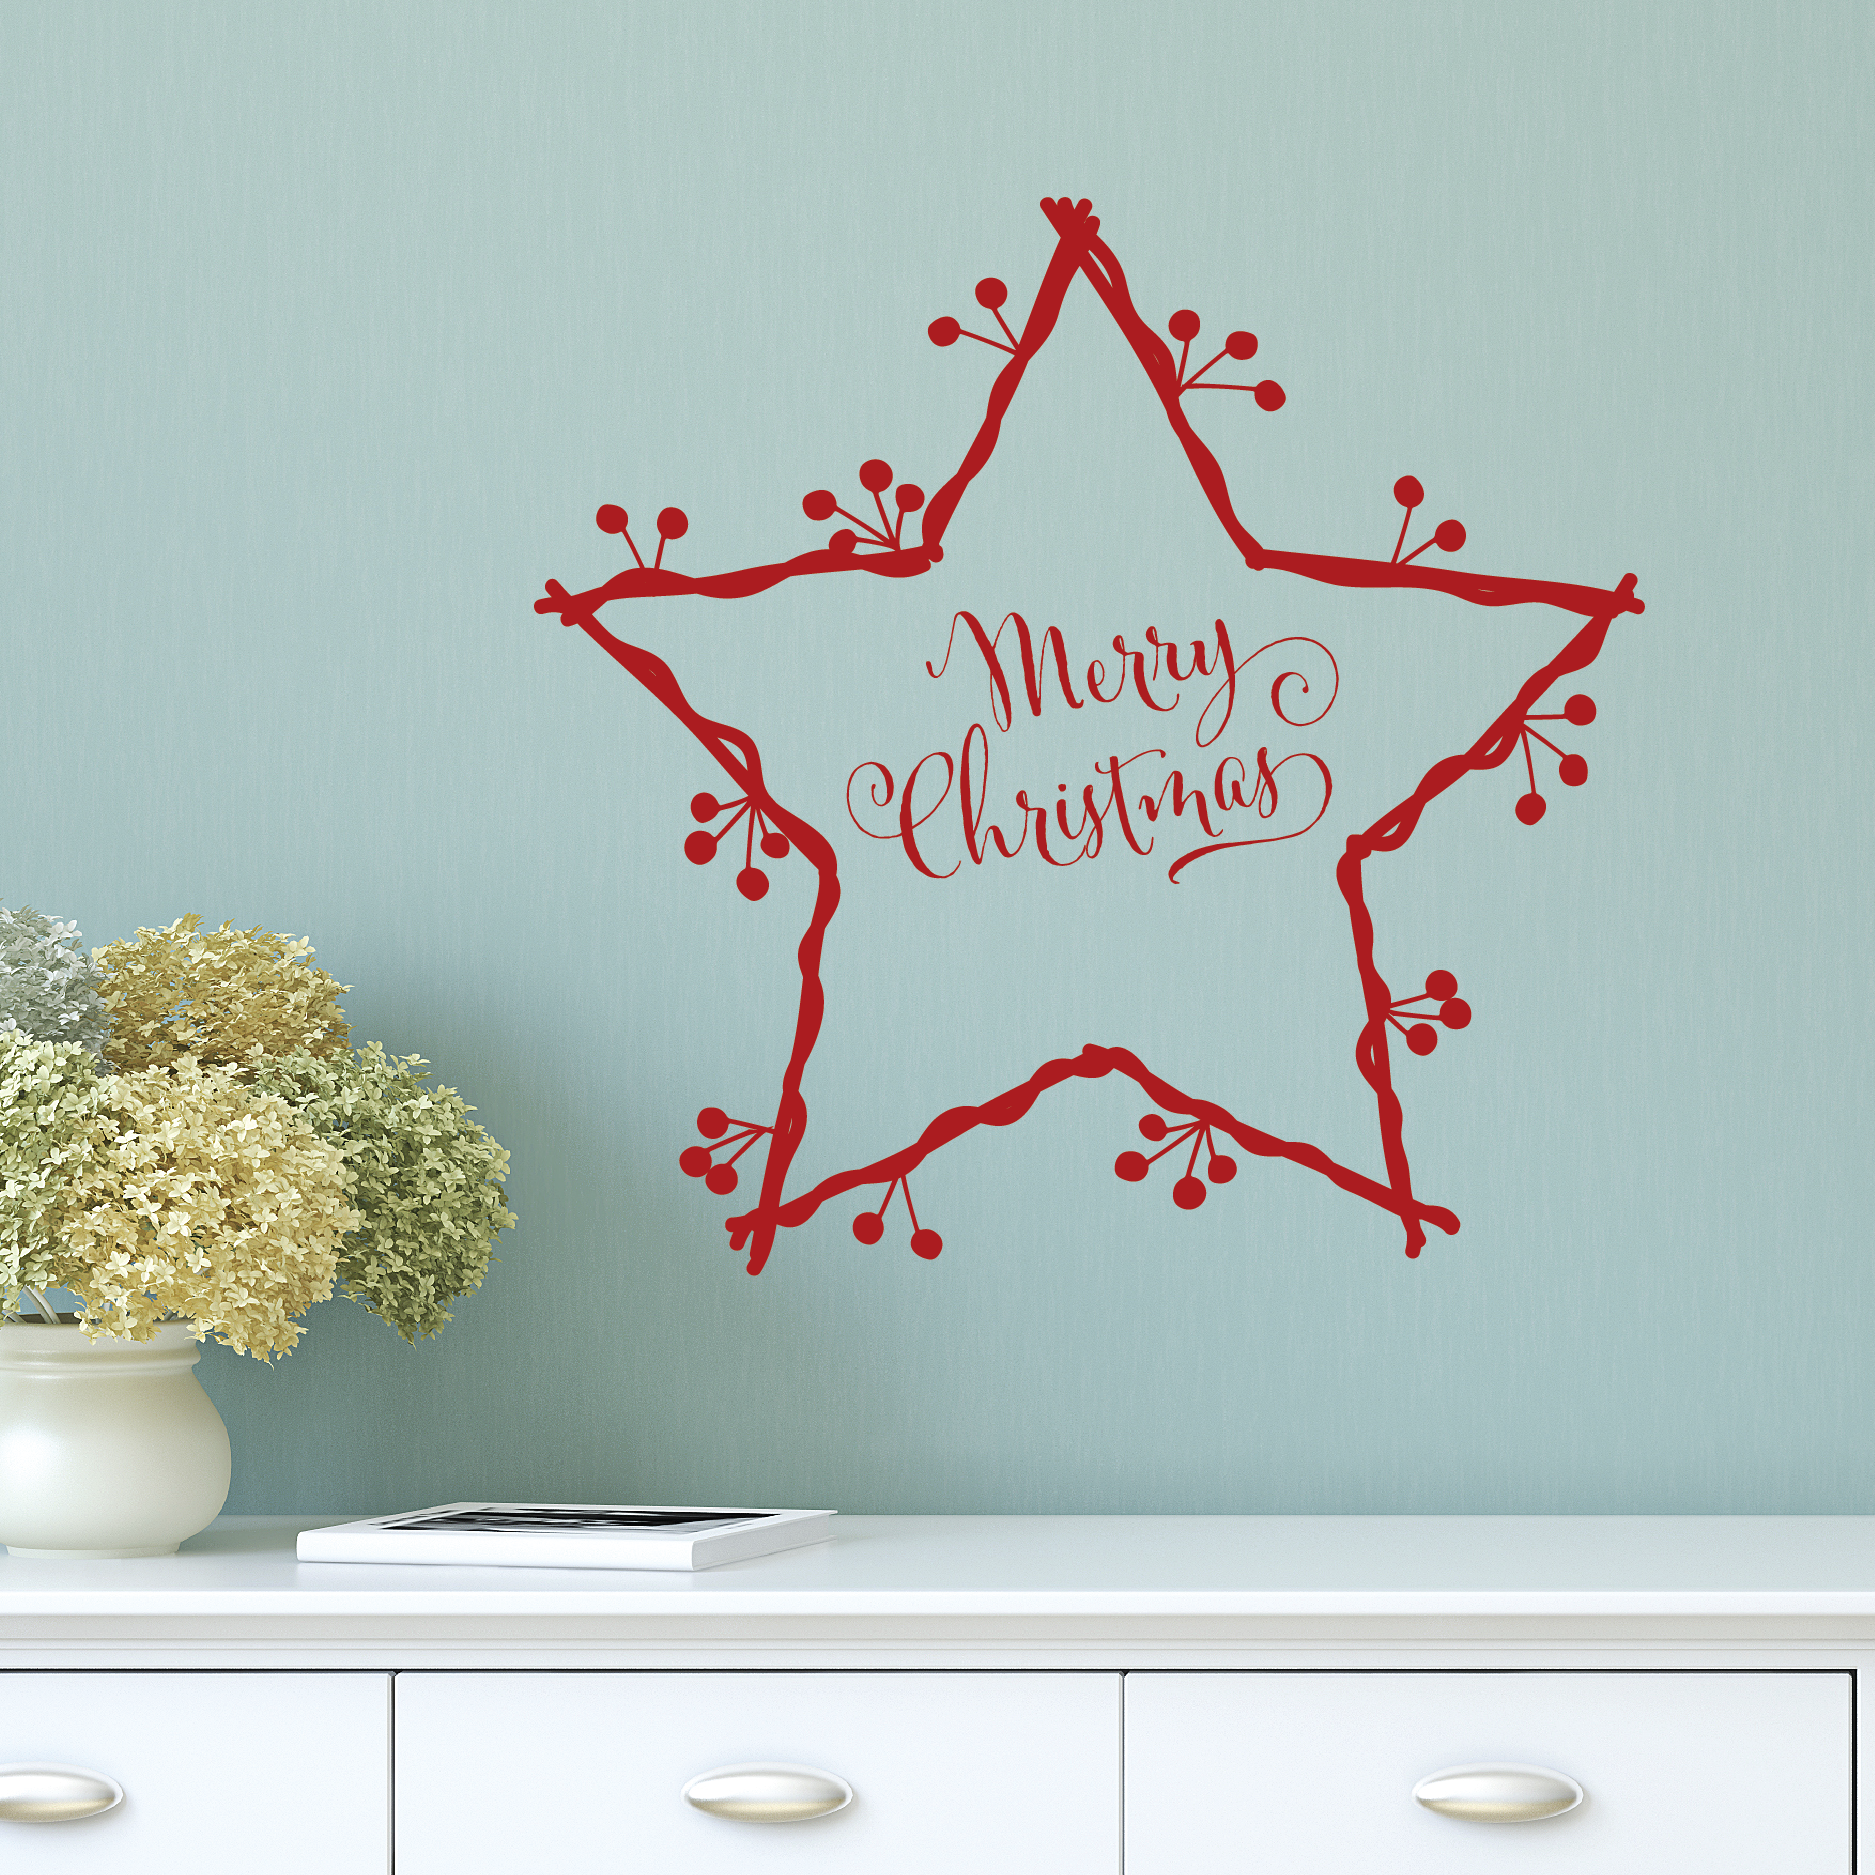 Star Wreath Wall Quotes™ Decal | WallQuotes.com for Wall Sticker Quotes Png  111bof